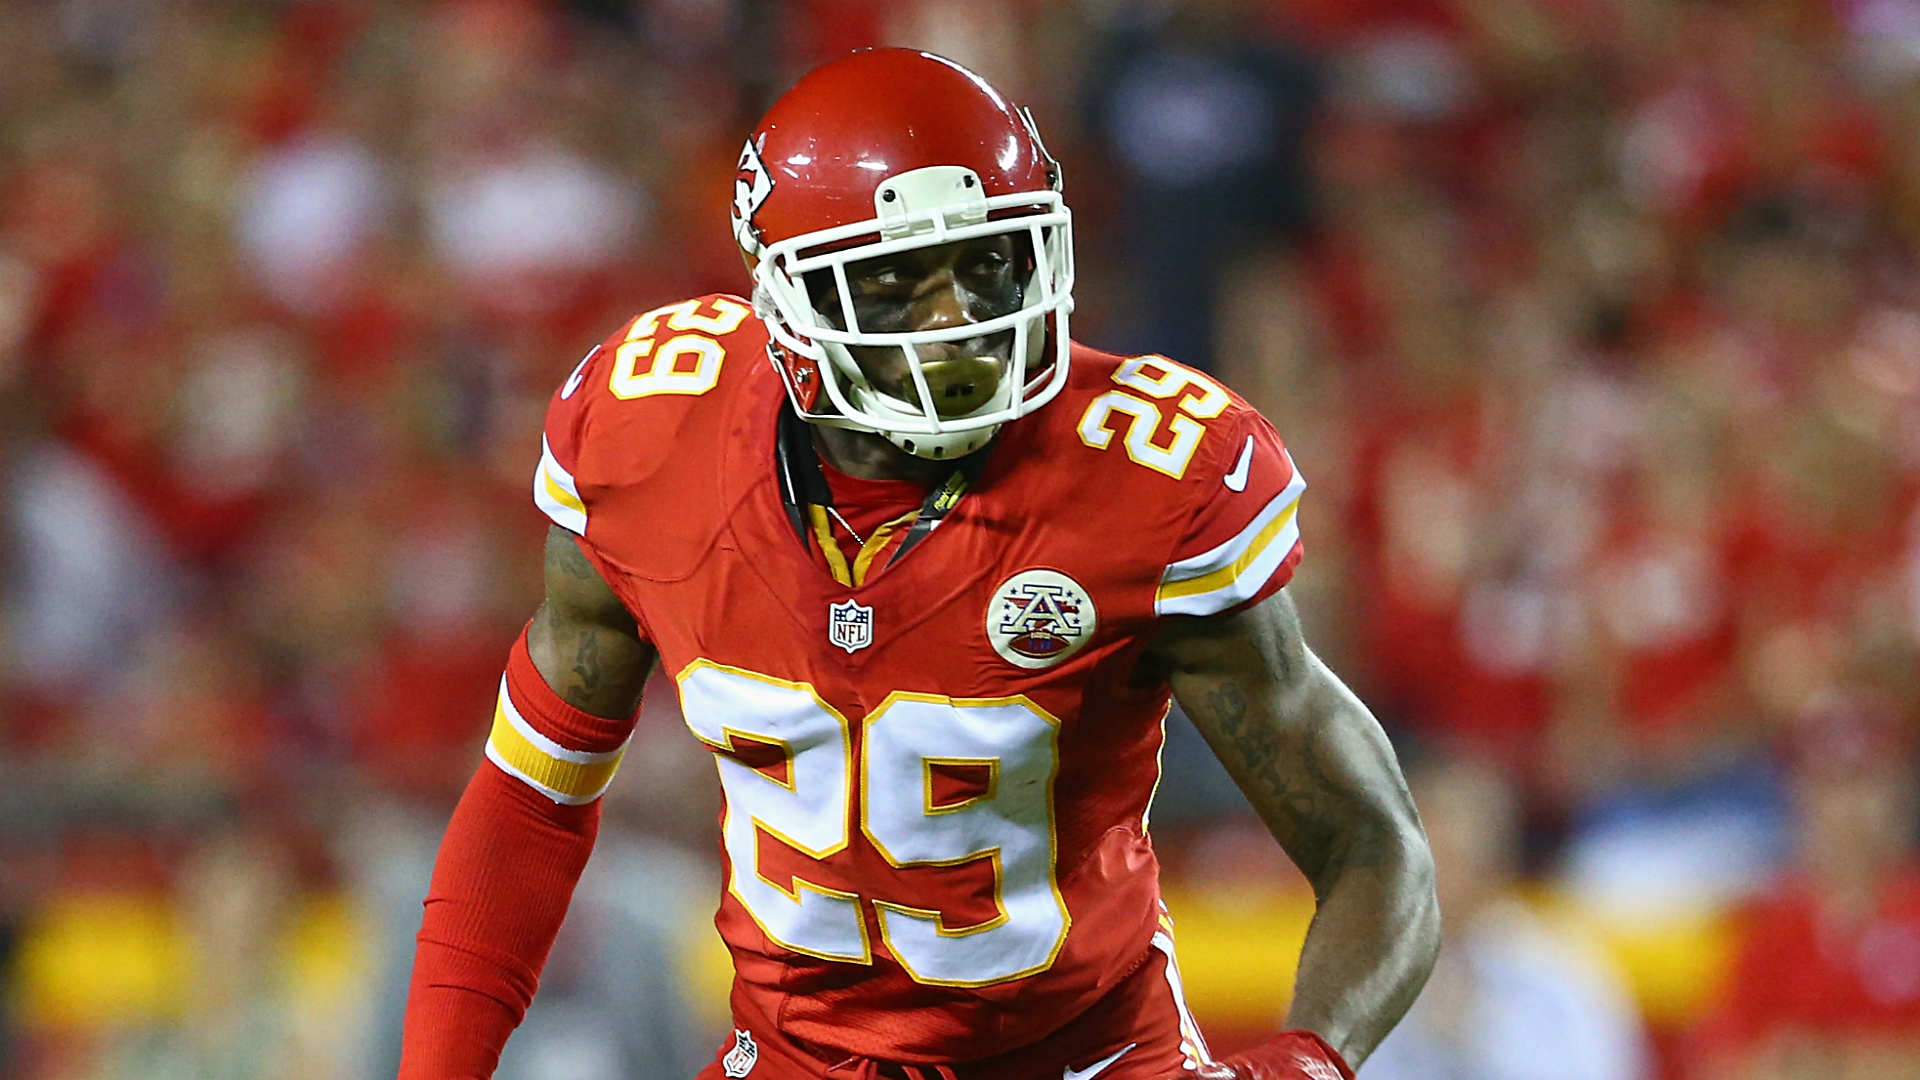 Chiefs expected to tag Eric Berry, let Dontari Poe hit free agency